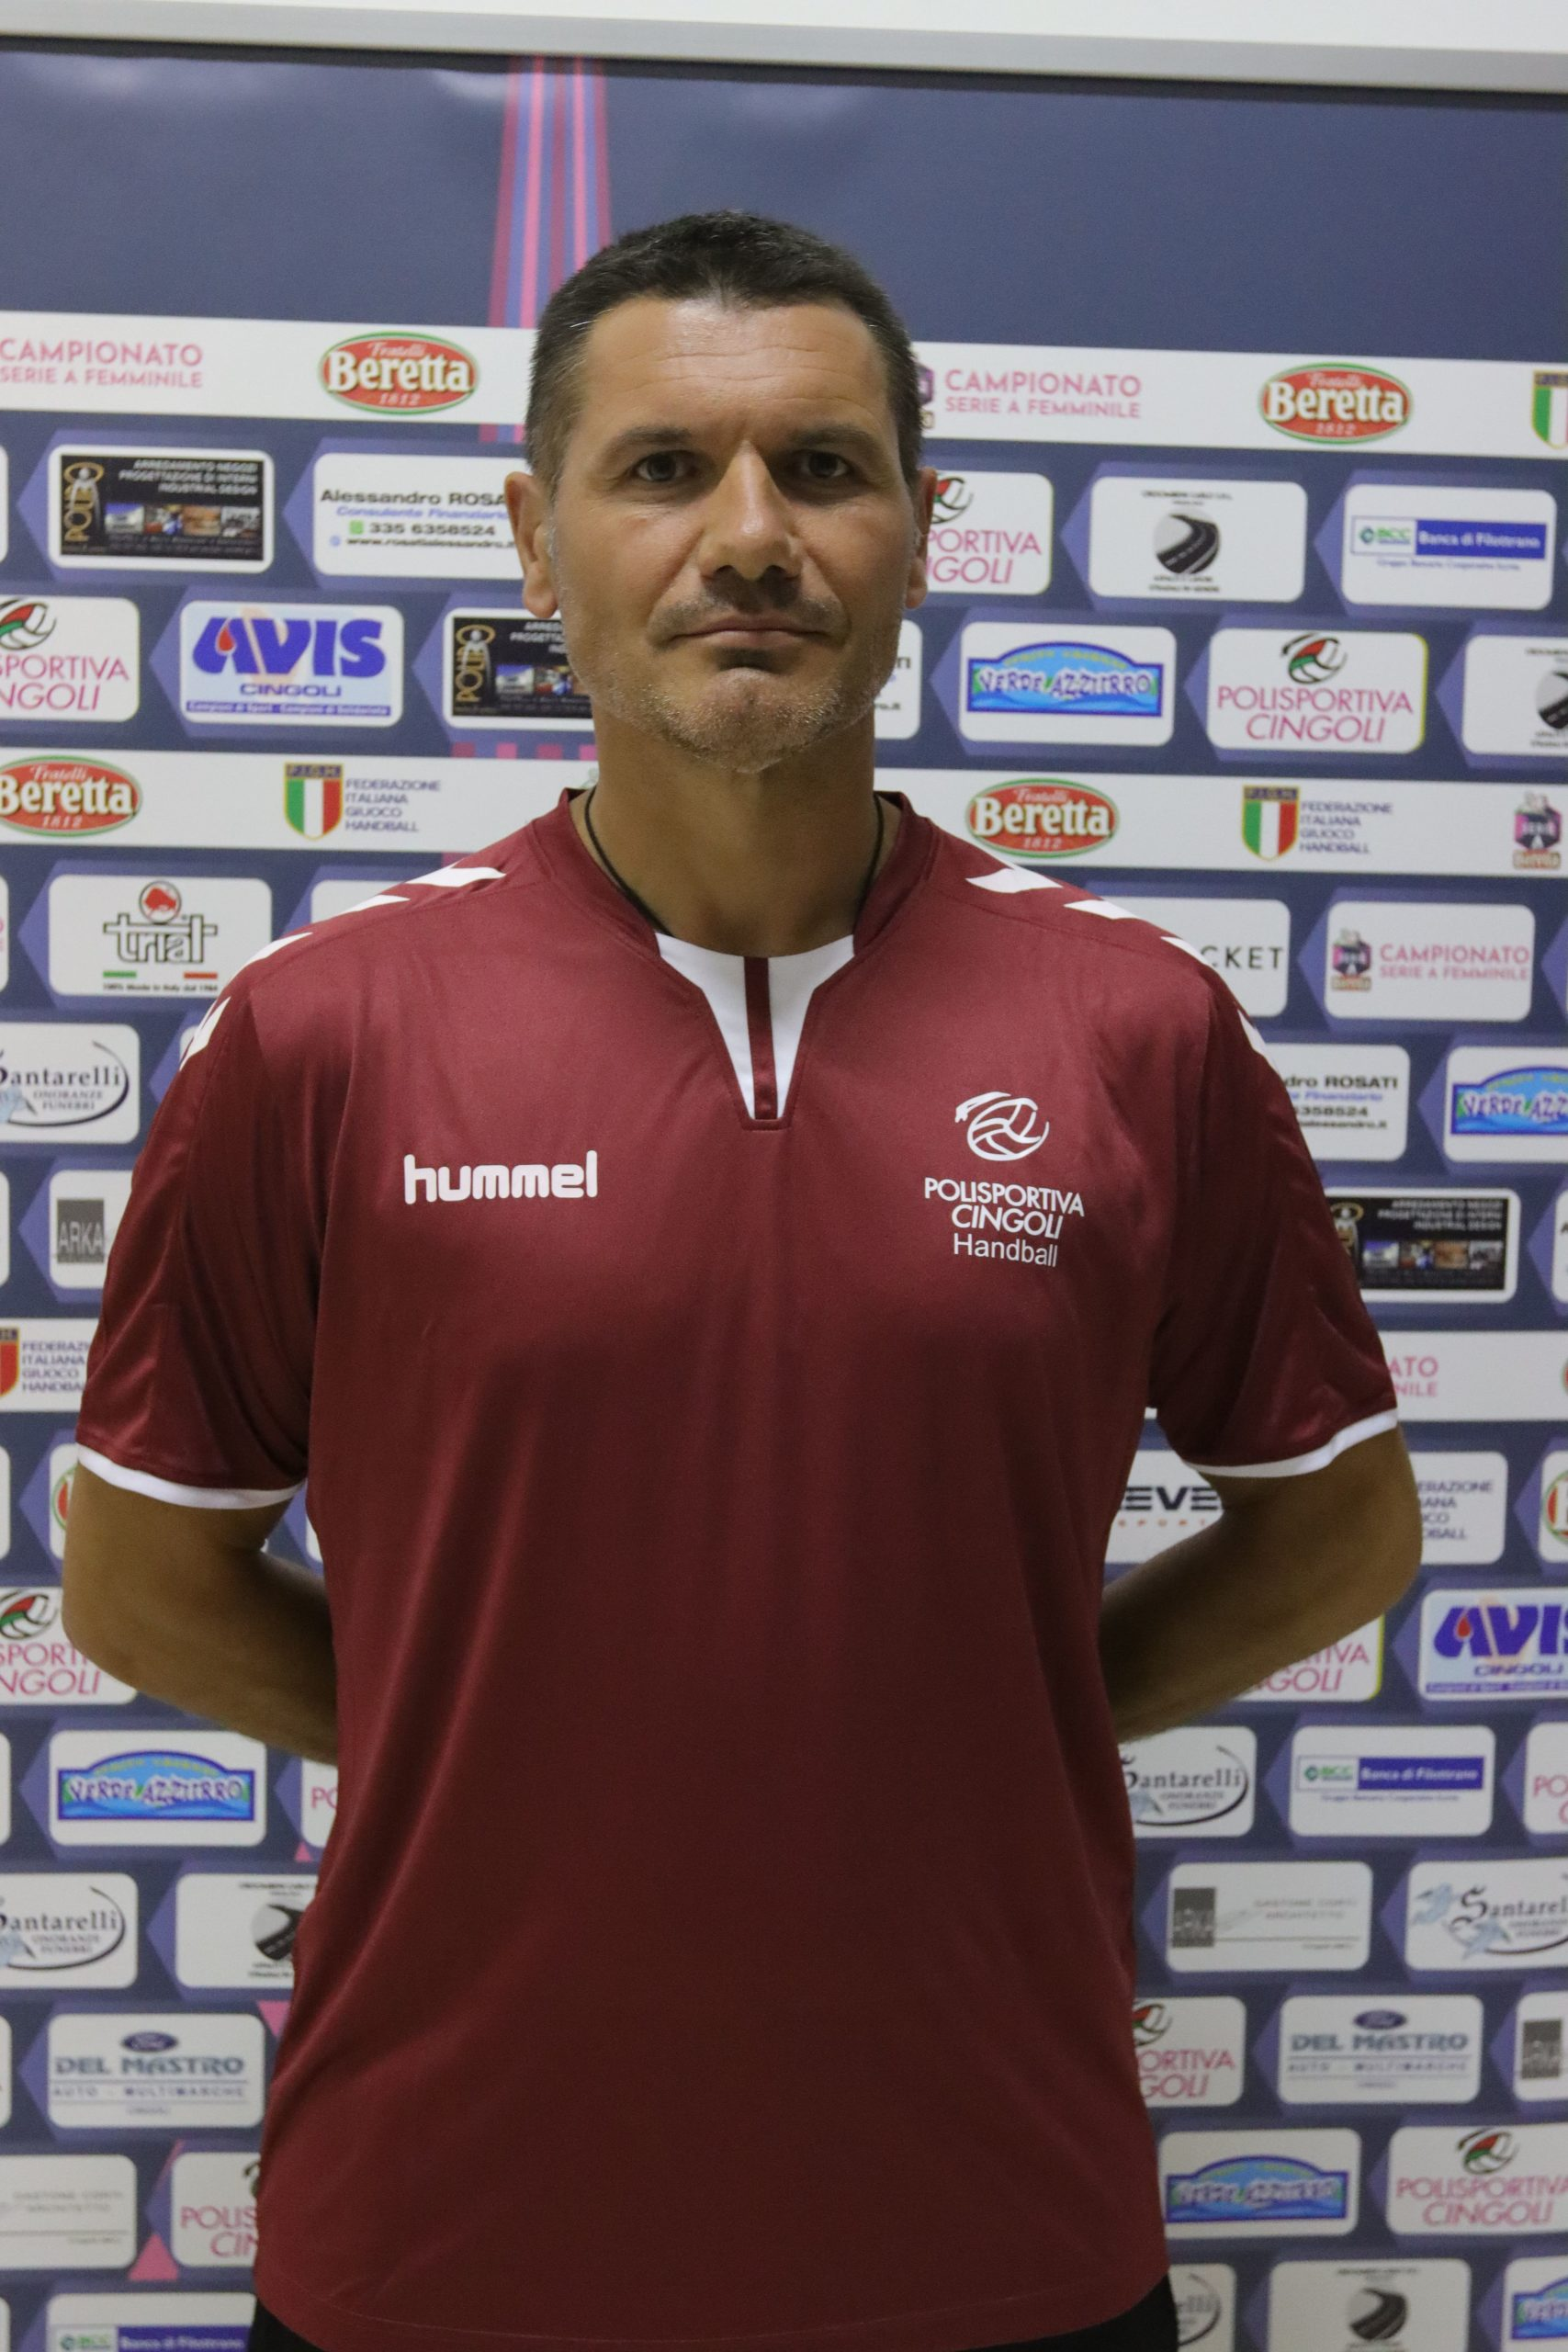 Giuliano Danti : Team Manager